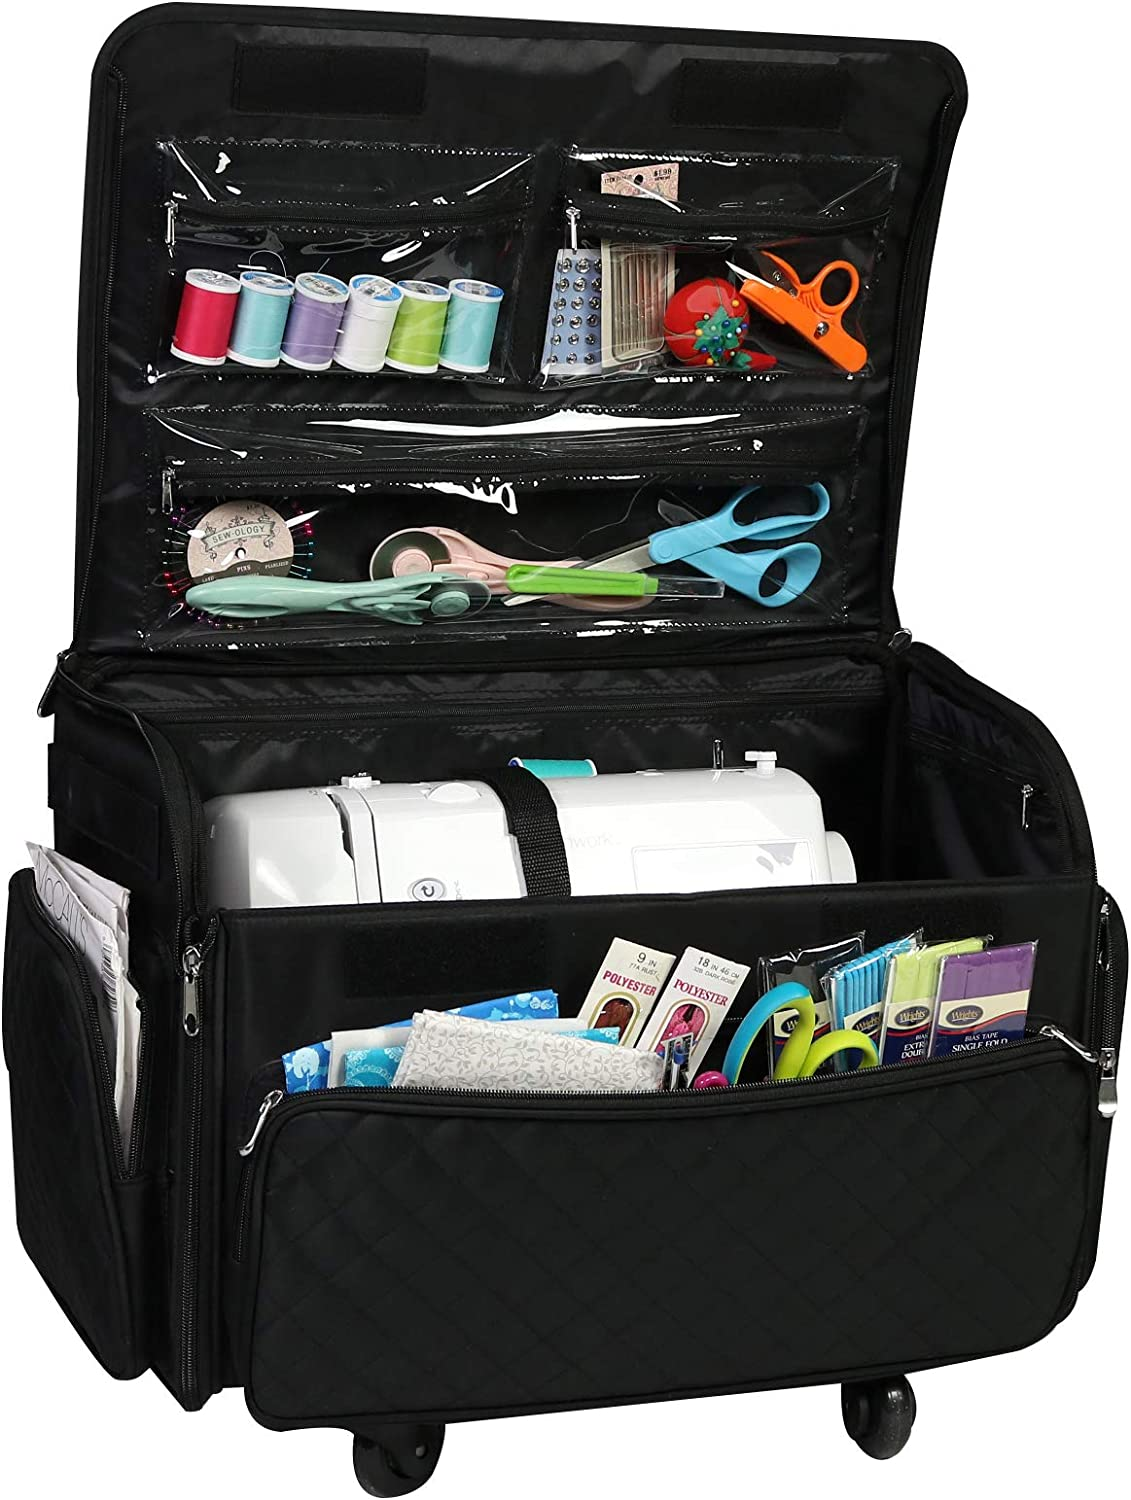 4 Wheels Collapsible Deluxe Sewing Machine Storage Case